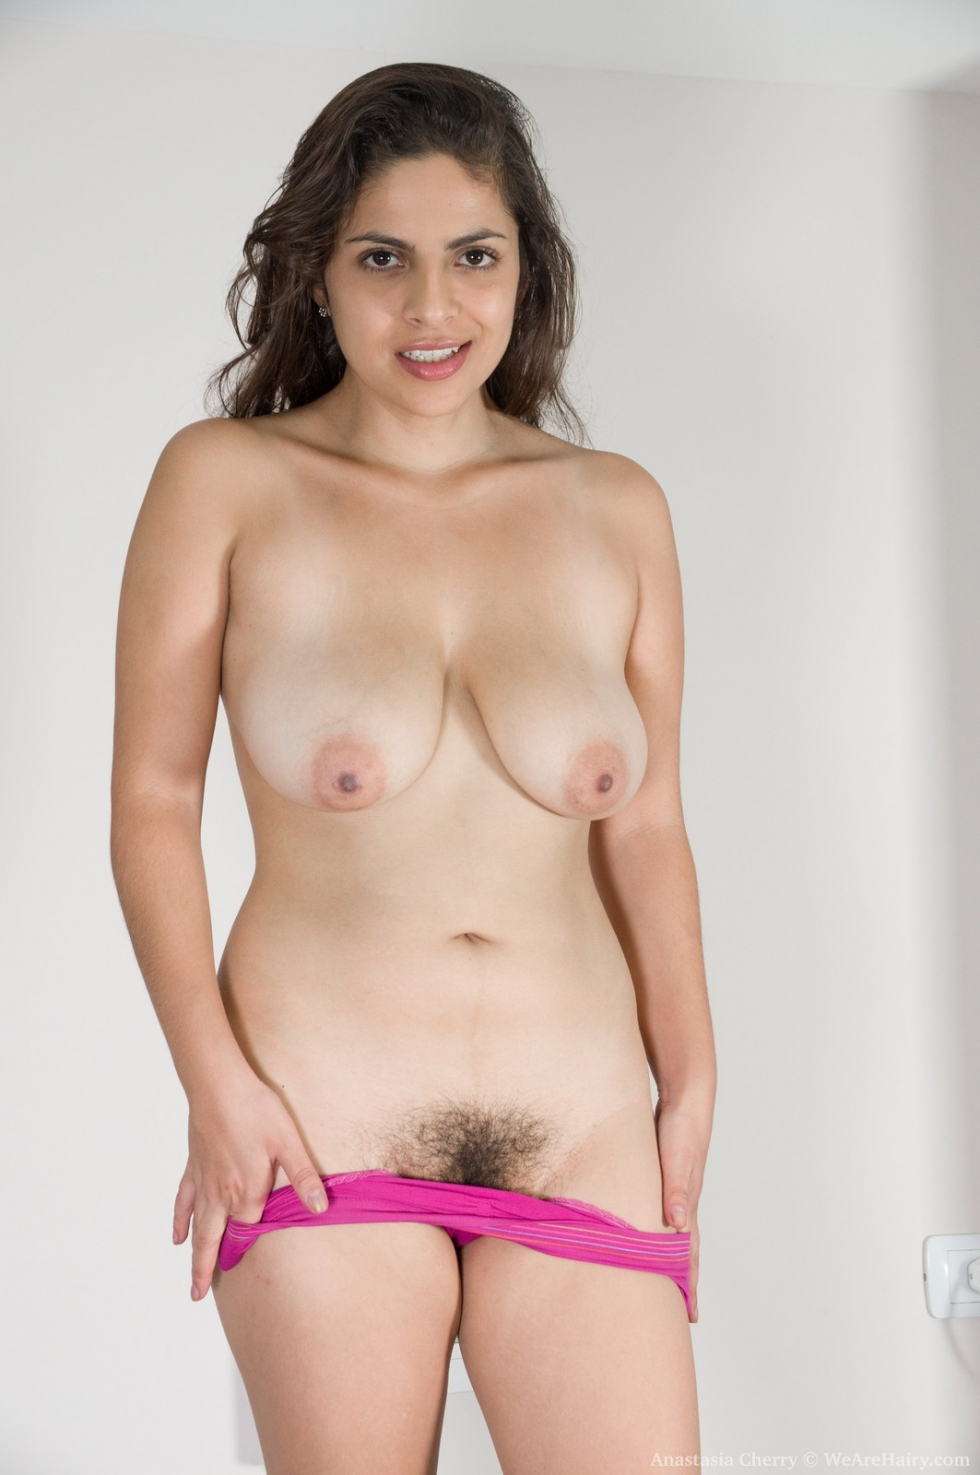 Wet pussy and clit